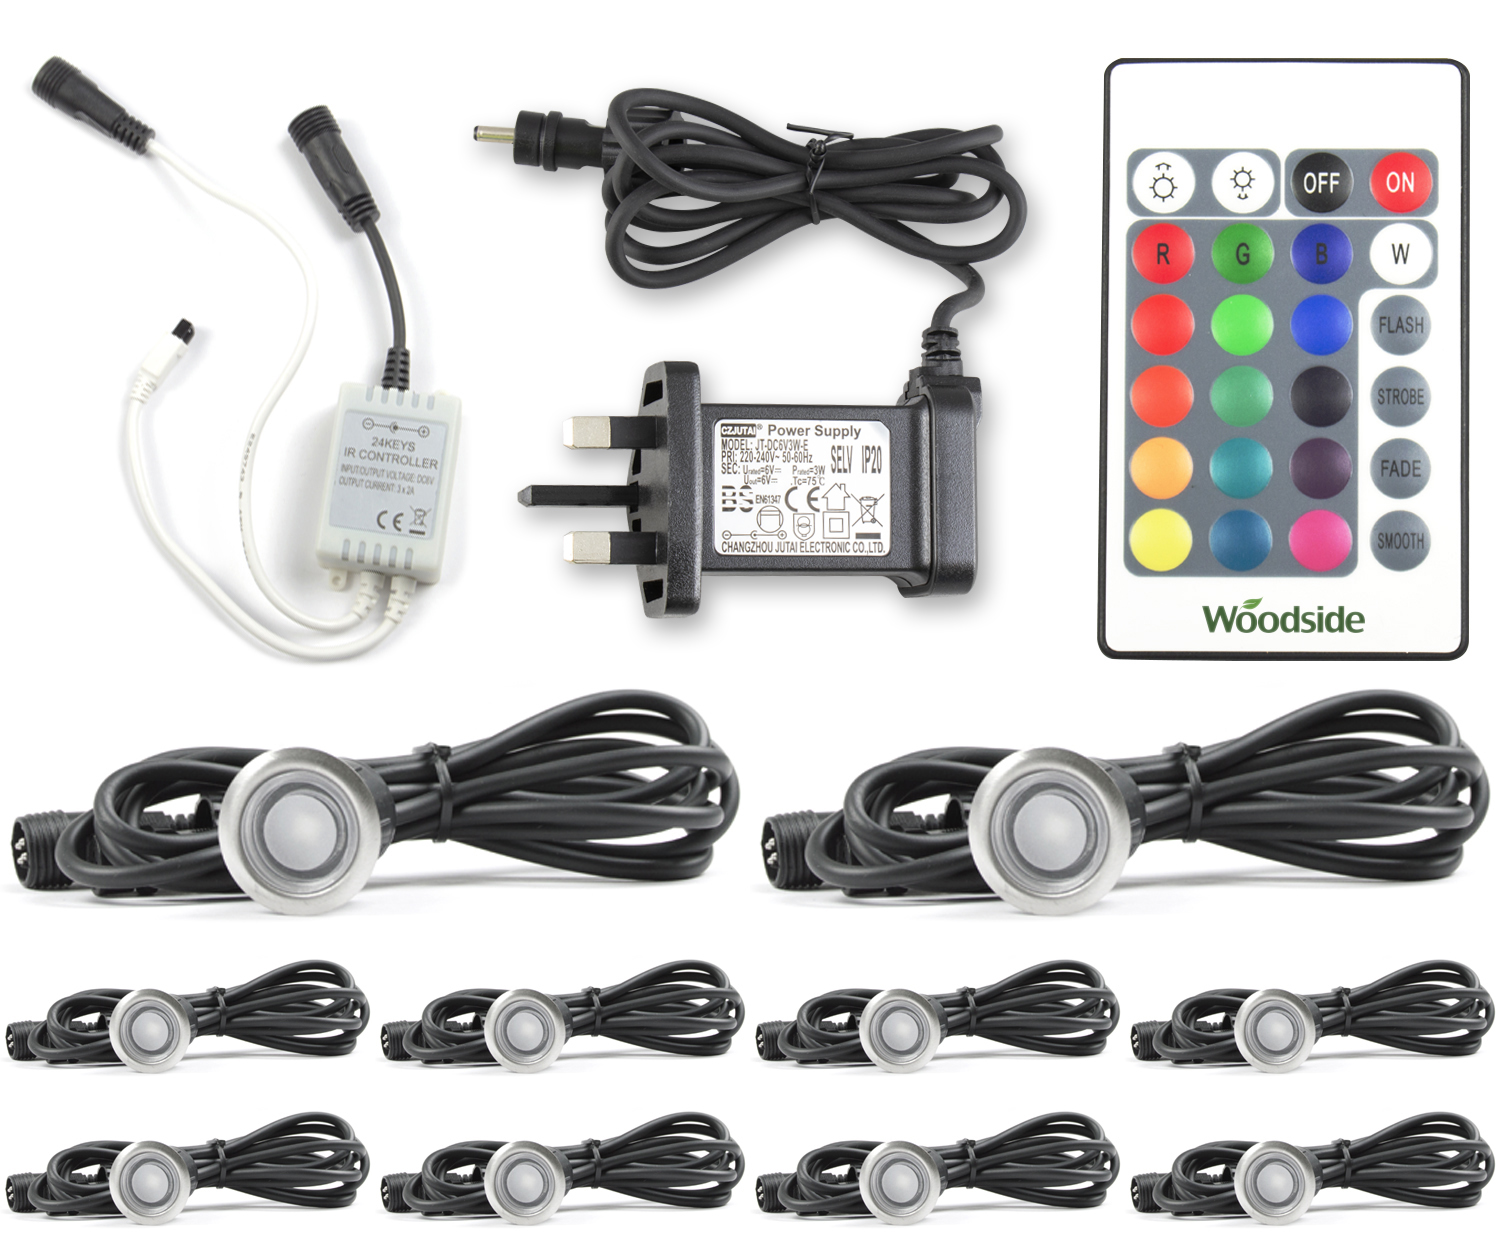 Woodside 30mm Colour Changing Deck Lights | Electrical | Outdoor Value